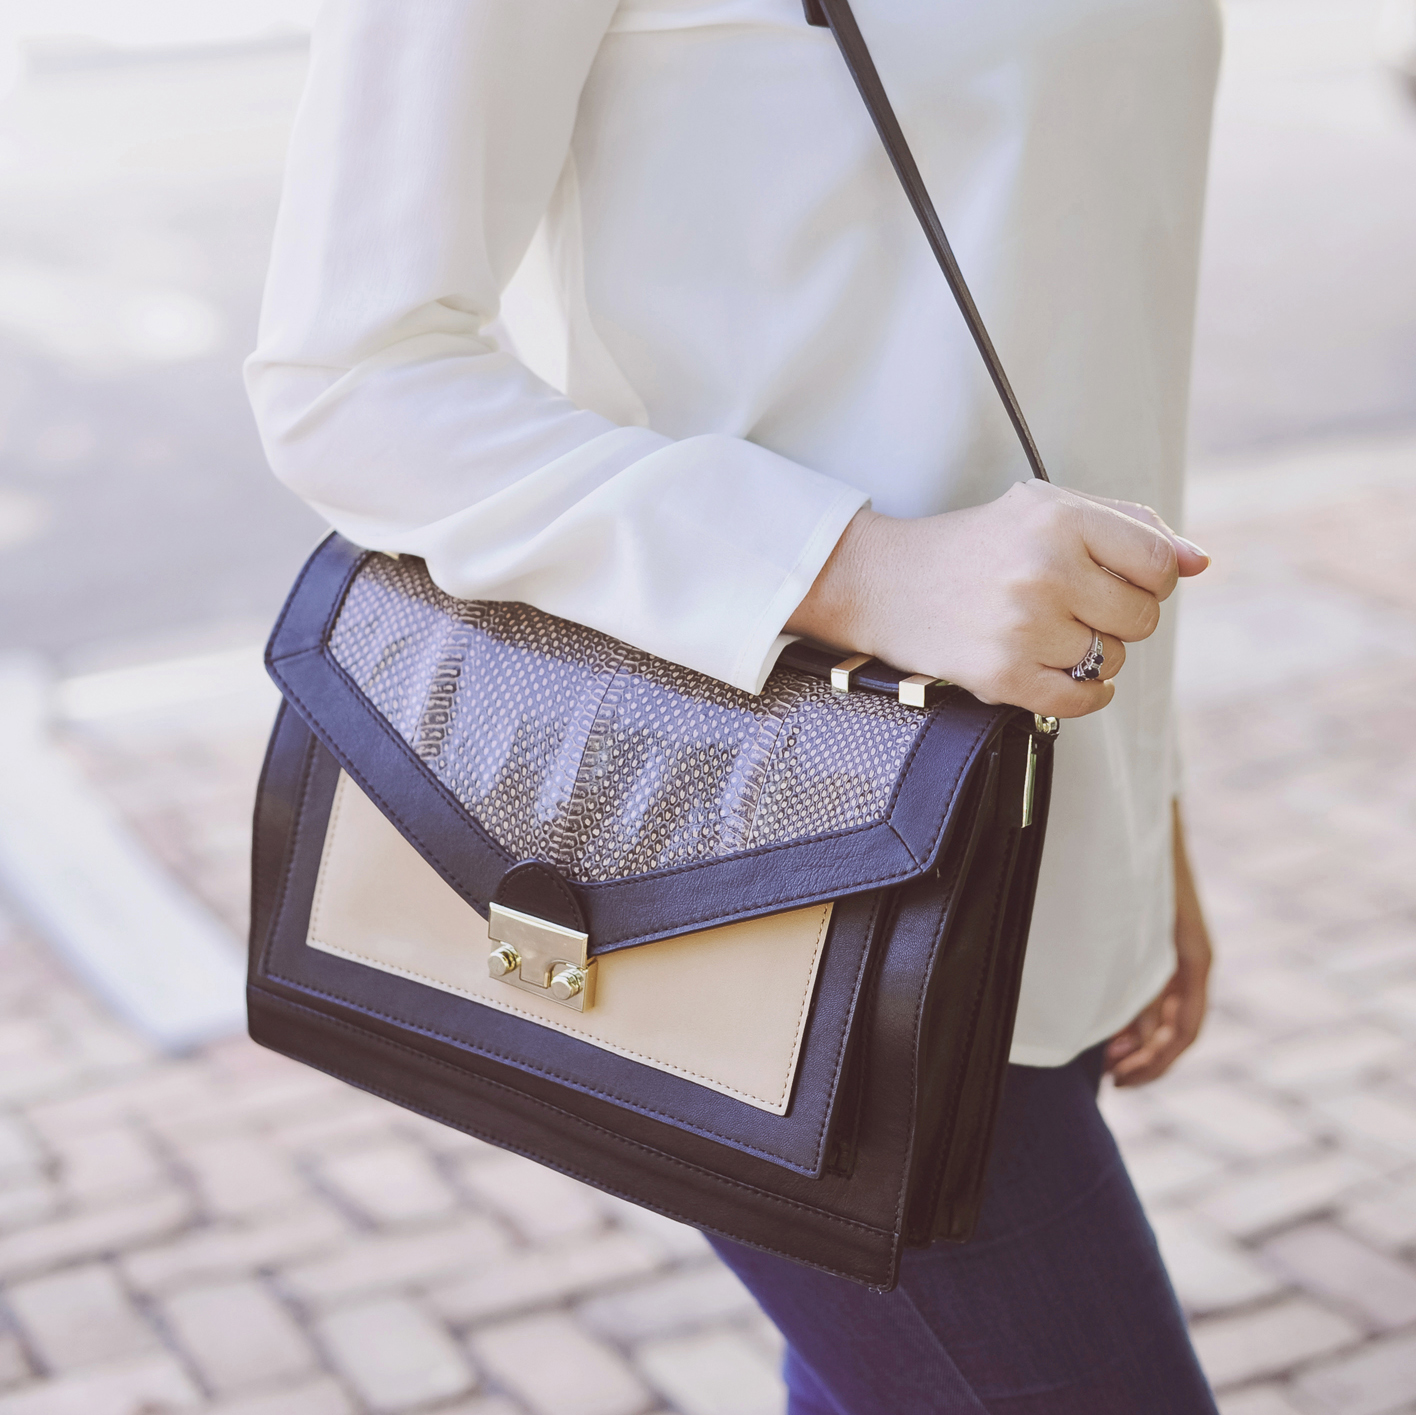 """Loeffler Randall Bag Image Courtesy of <a href=""""http://dc.racked.com/archives/2013/10/01/bishop-boutique-fall2013lookbook.php"""">Bishop Boutique</a>"""